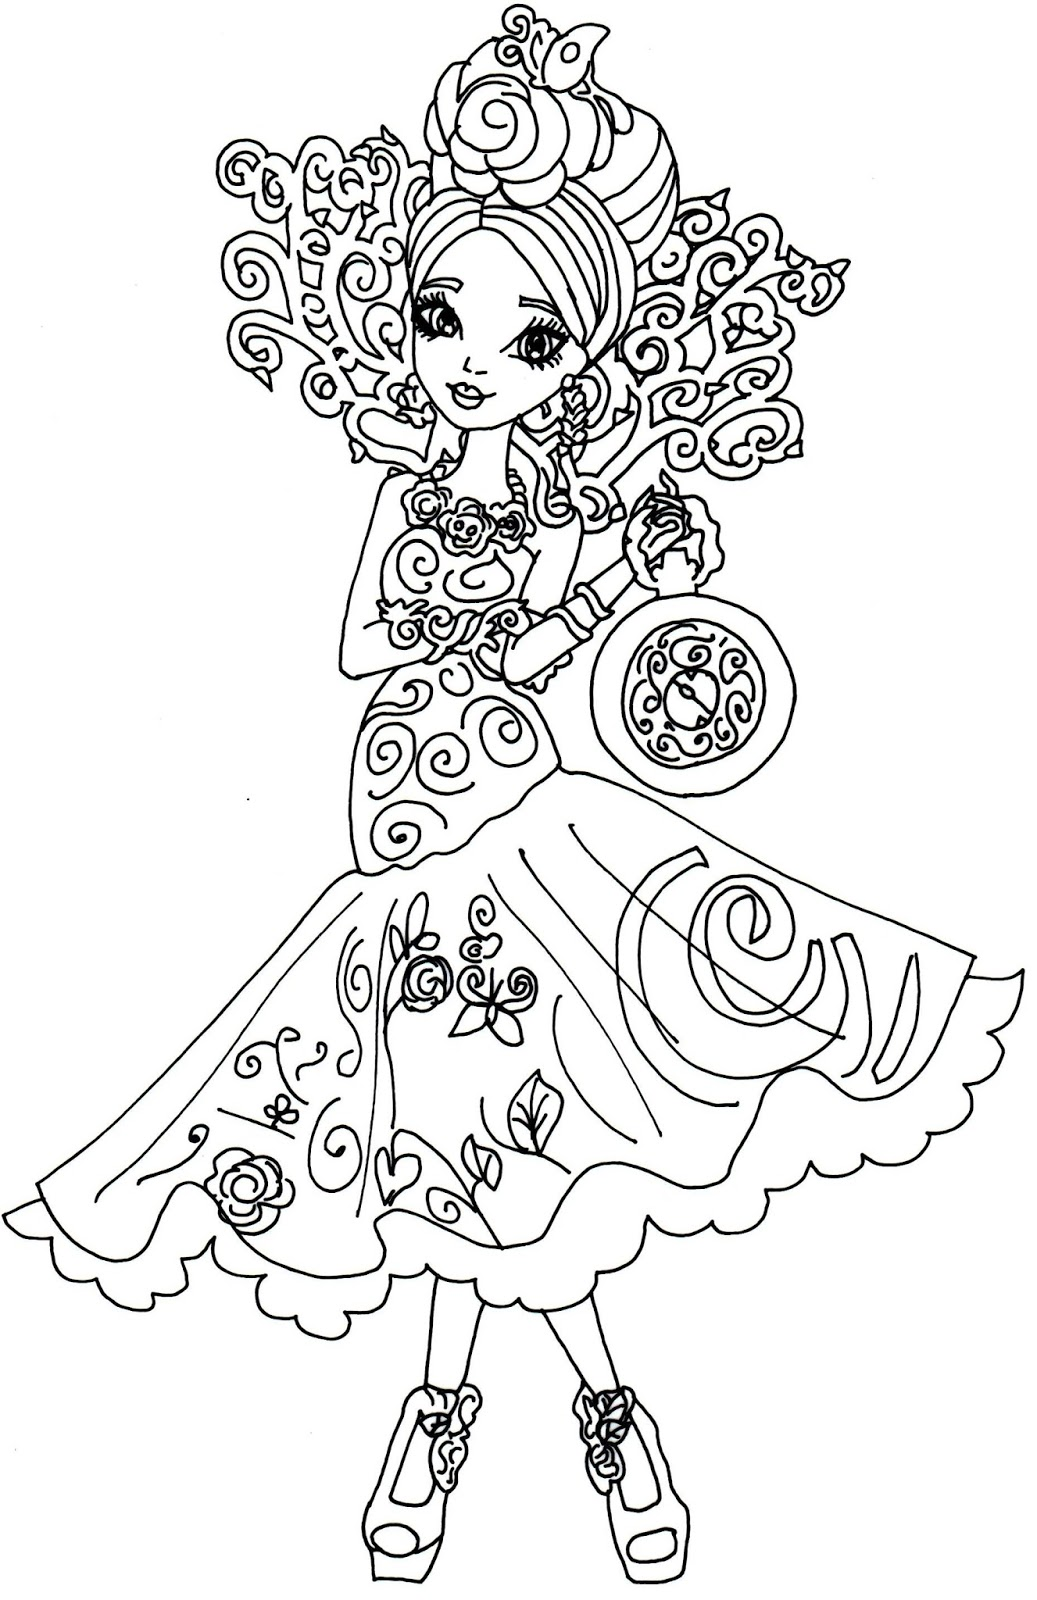 Printable coloring pages ever after high - Free Printable Ever After High Coloring Page For Briar Beauty In Way Too Wonderland